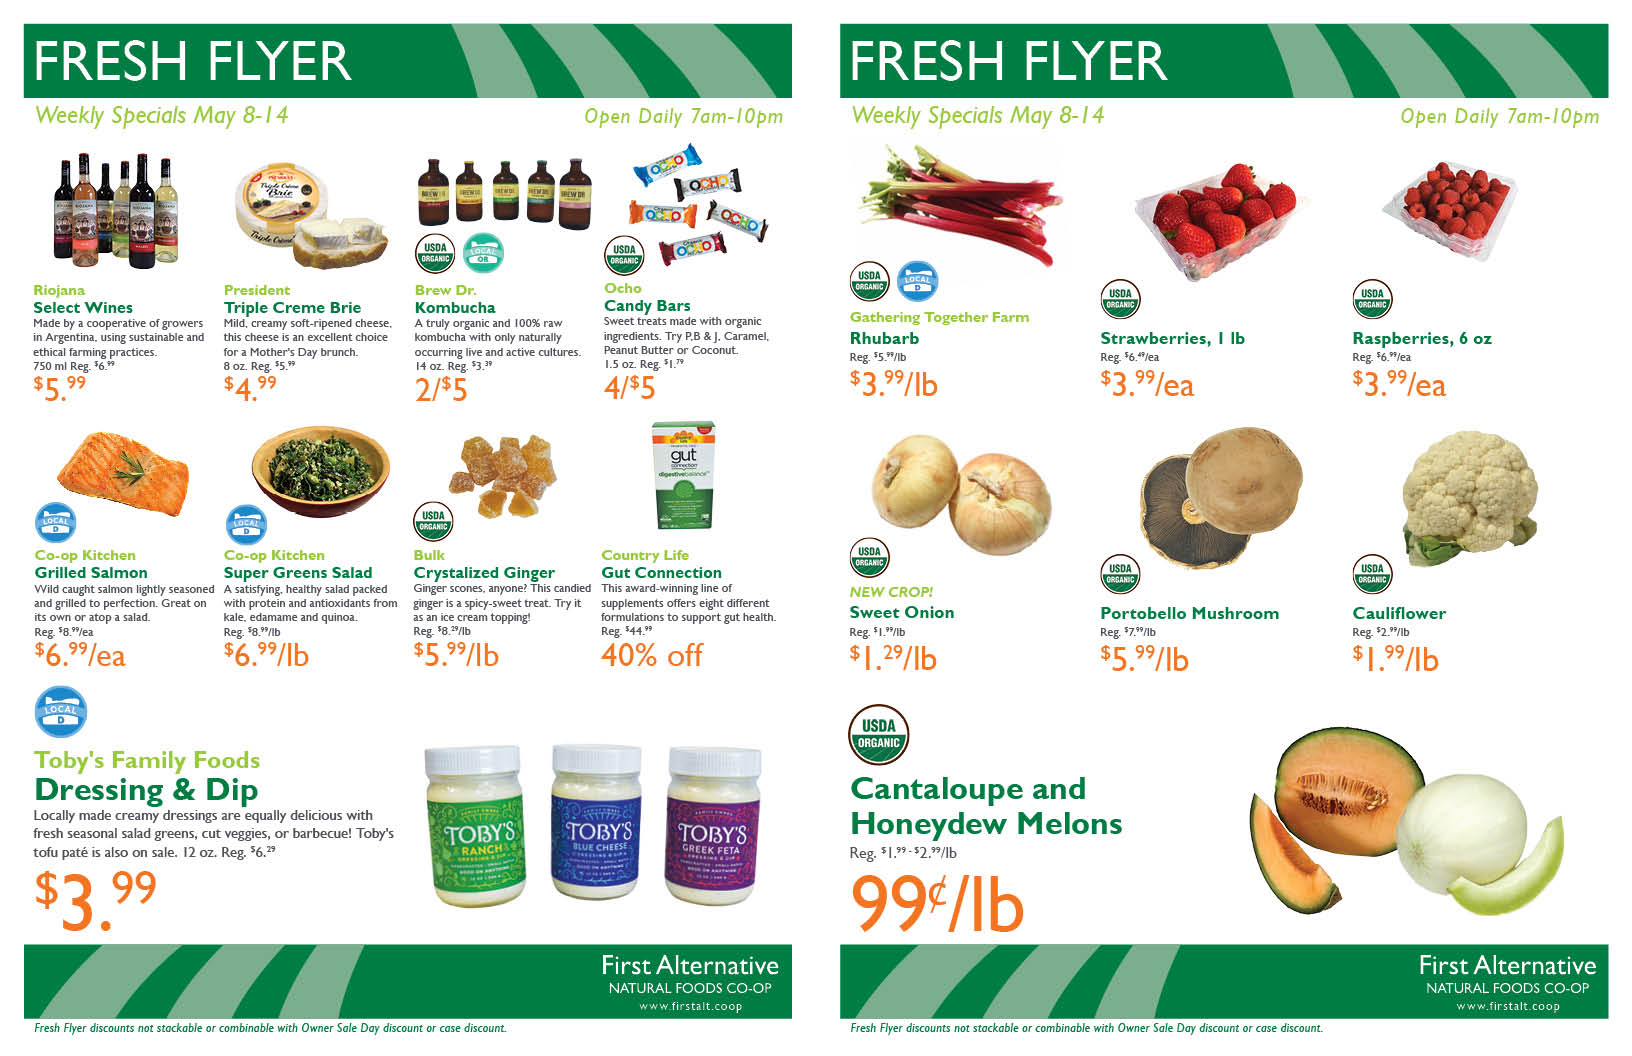 First Alternative Co-op Fresh Flyer May 8-14